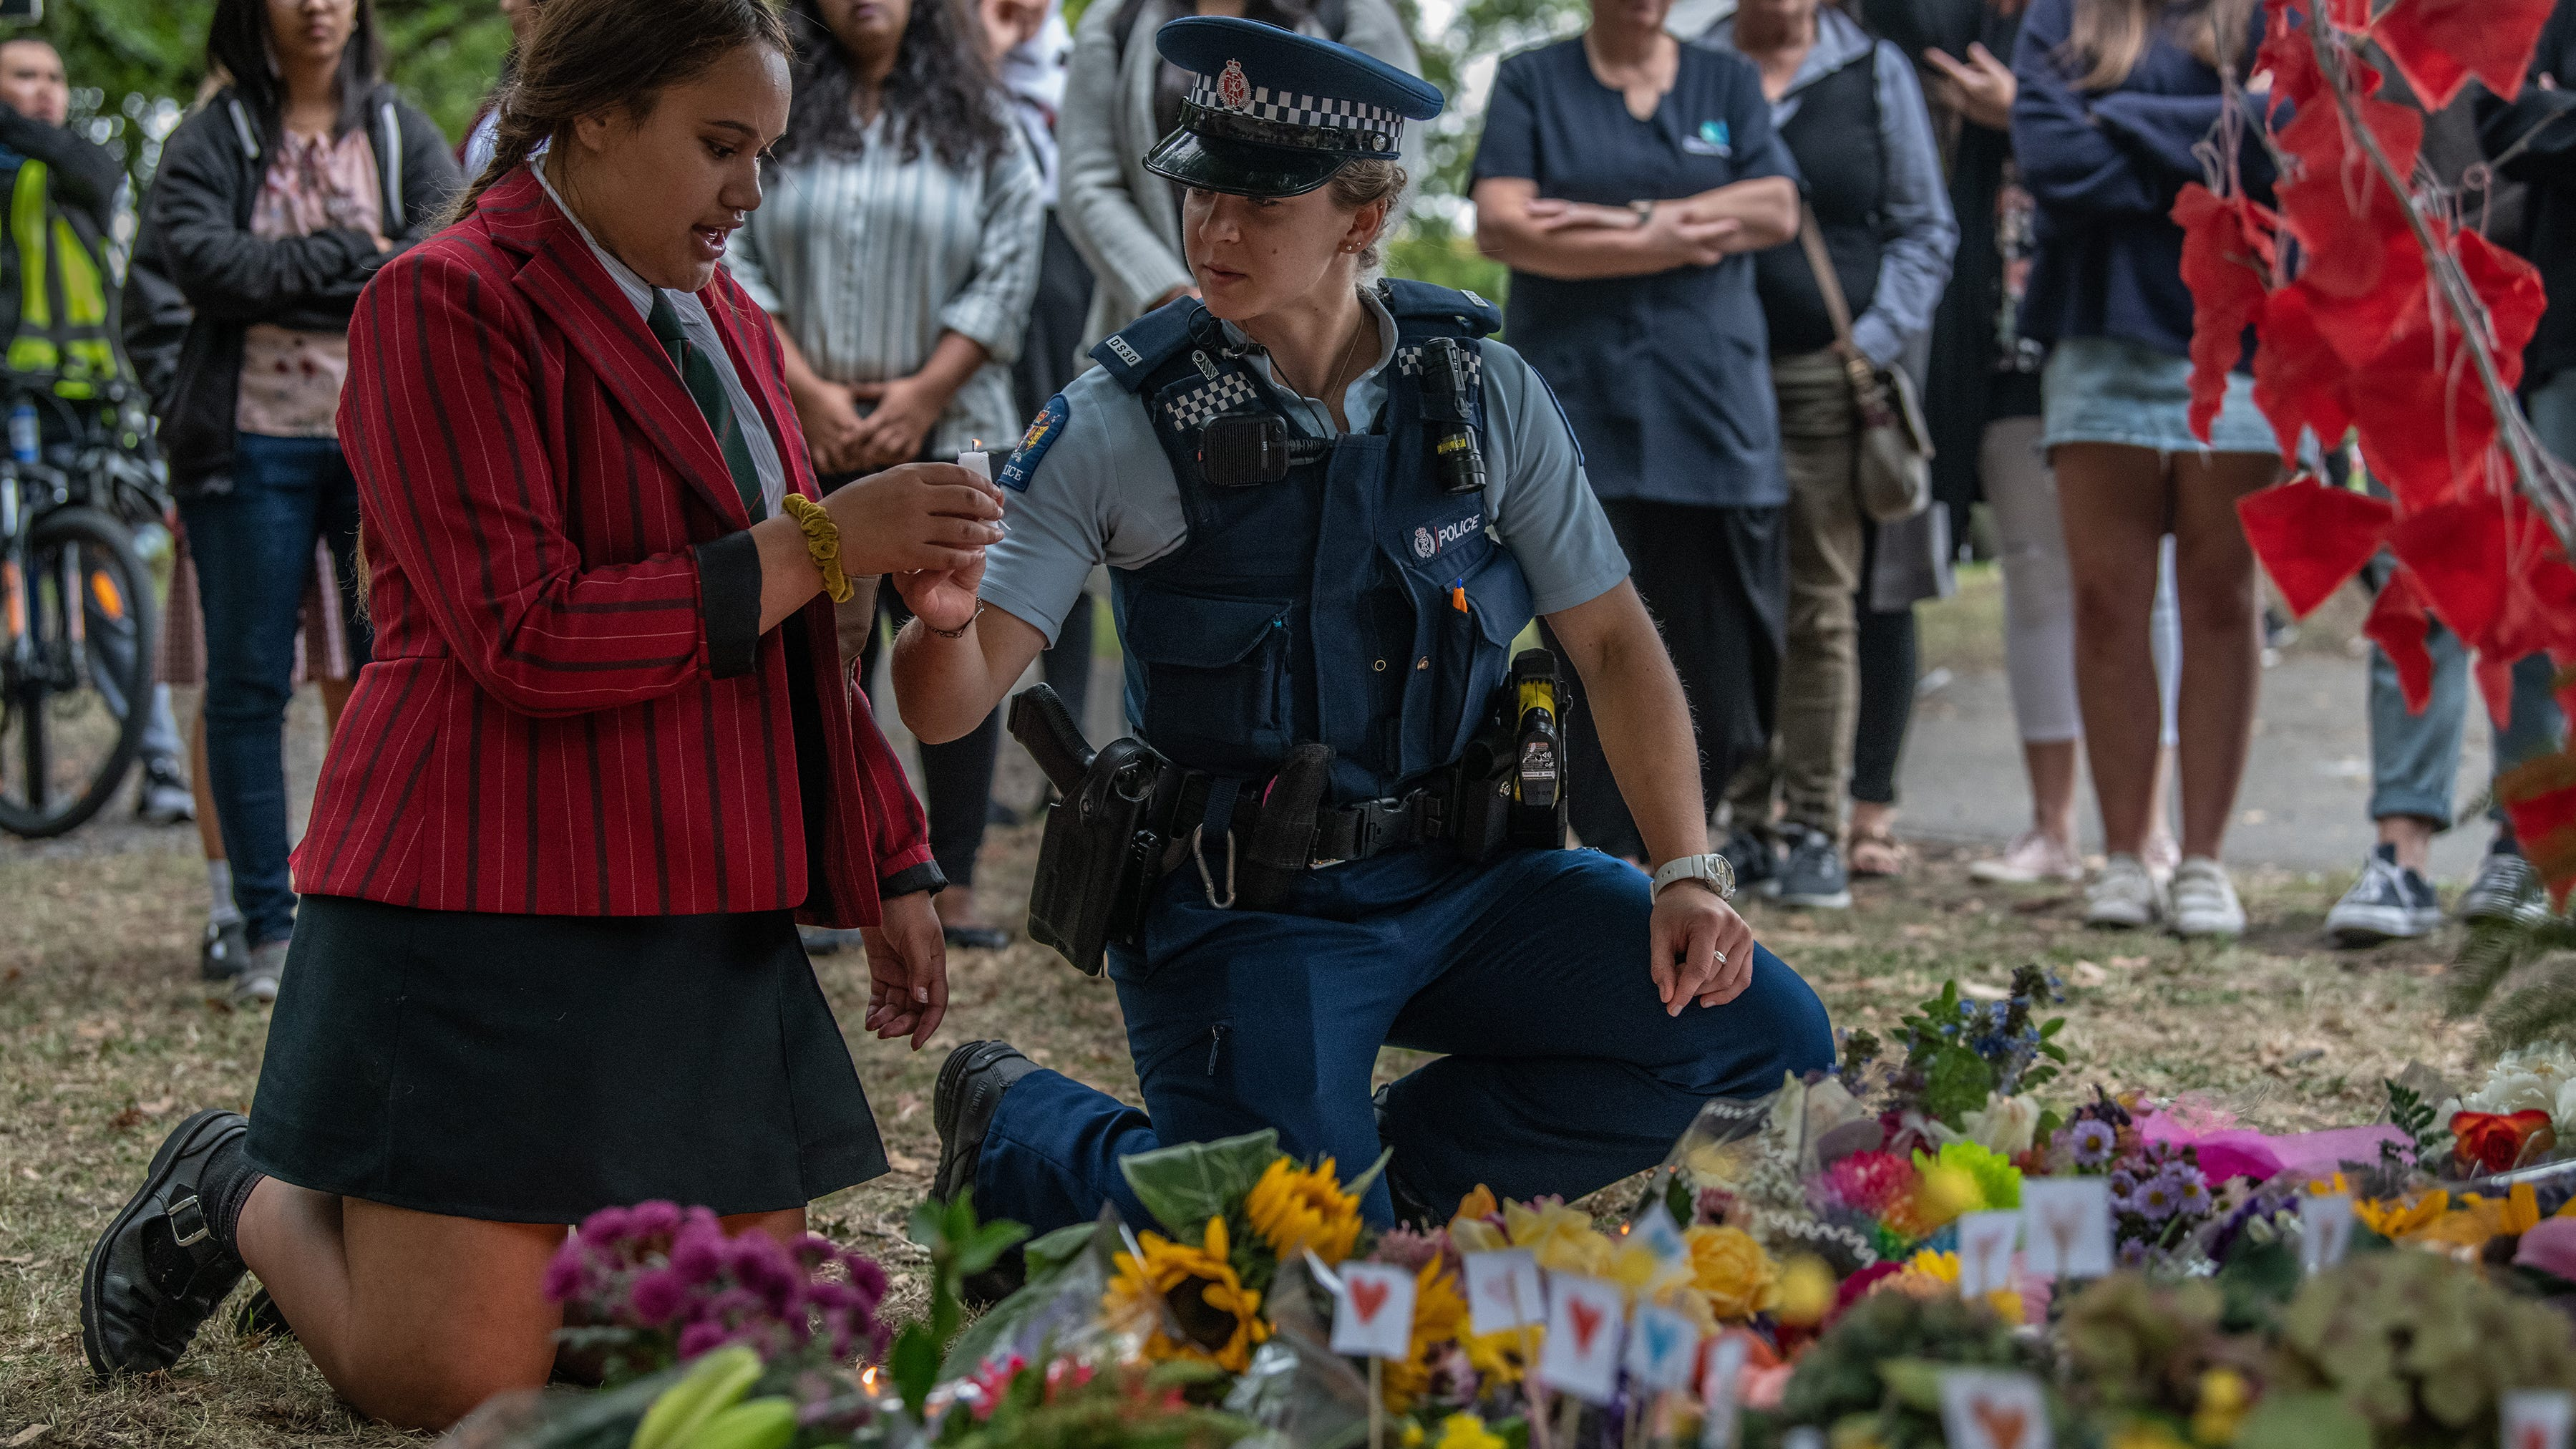 A police officer passes a candle to a schoolgirl during a students vigil near Al Noor mosque on March 18, 2019 in Christchurch, New Zealand.